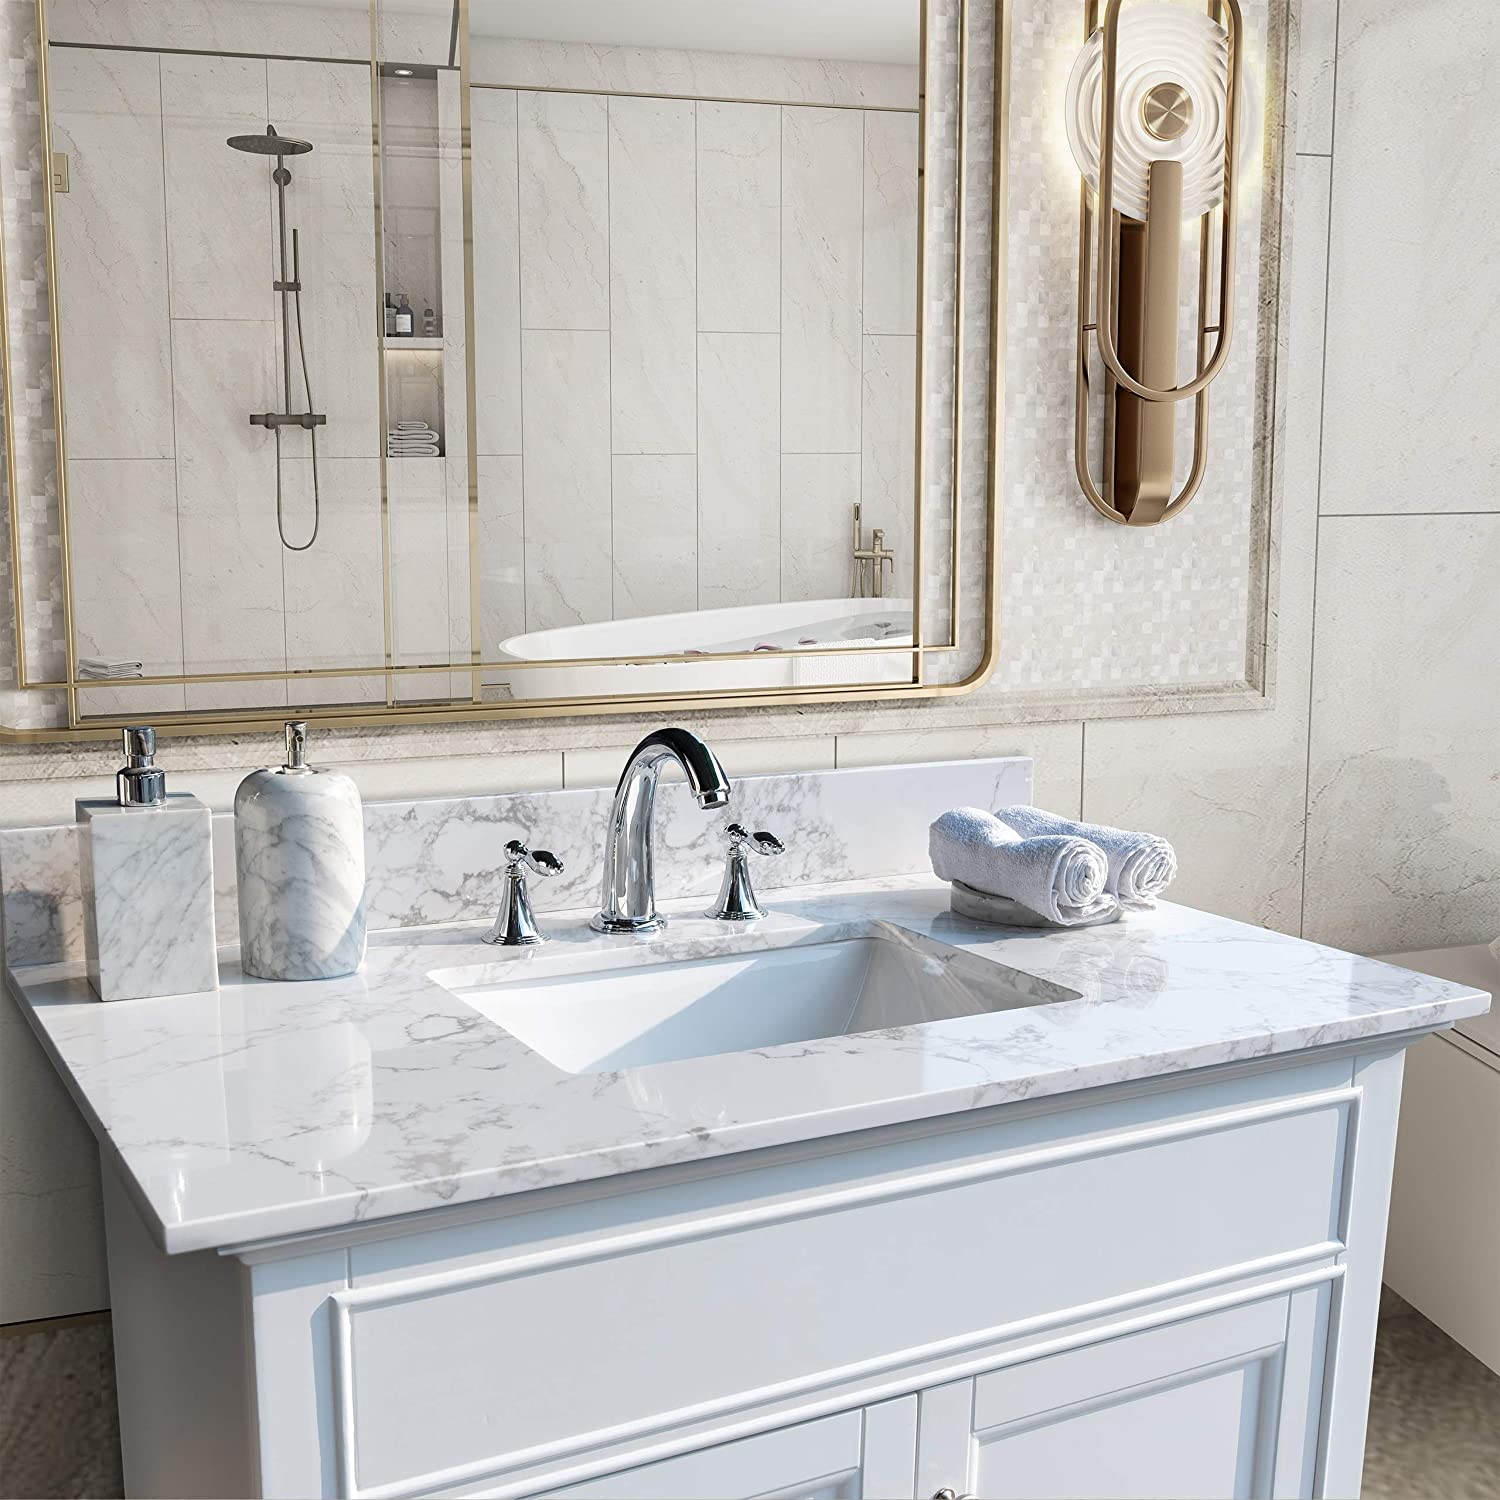 43 X 22 Vanity Top Stone Carrara White Tops With Undercounter Rectangular Ceramic Bathroom Sink And Back Splash For Bathrom Cabinet Natrual Marble Stone 8 Faucet Holes Kitchen Bath Fixtures Tools